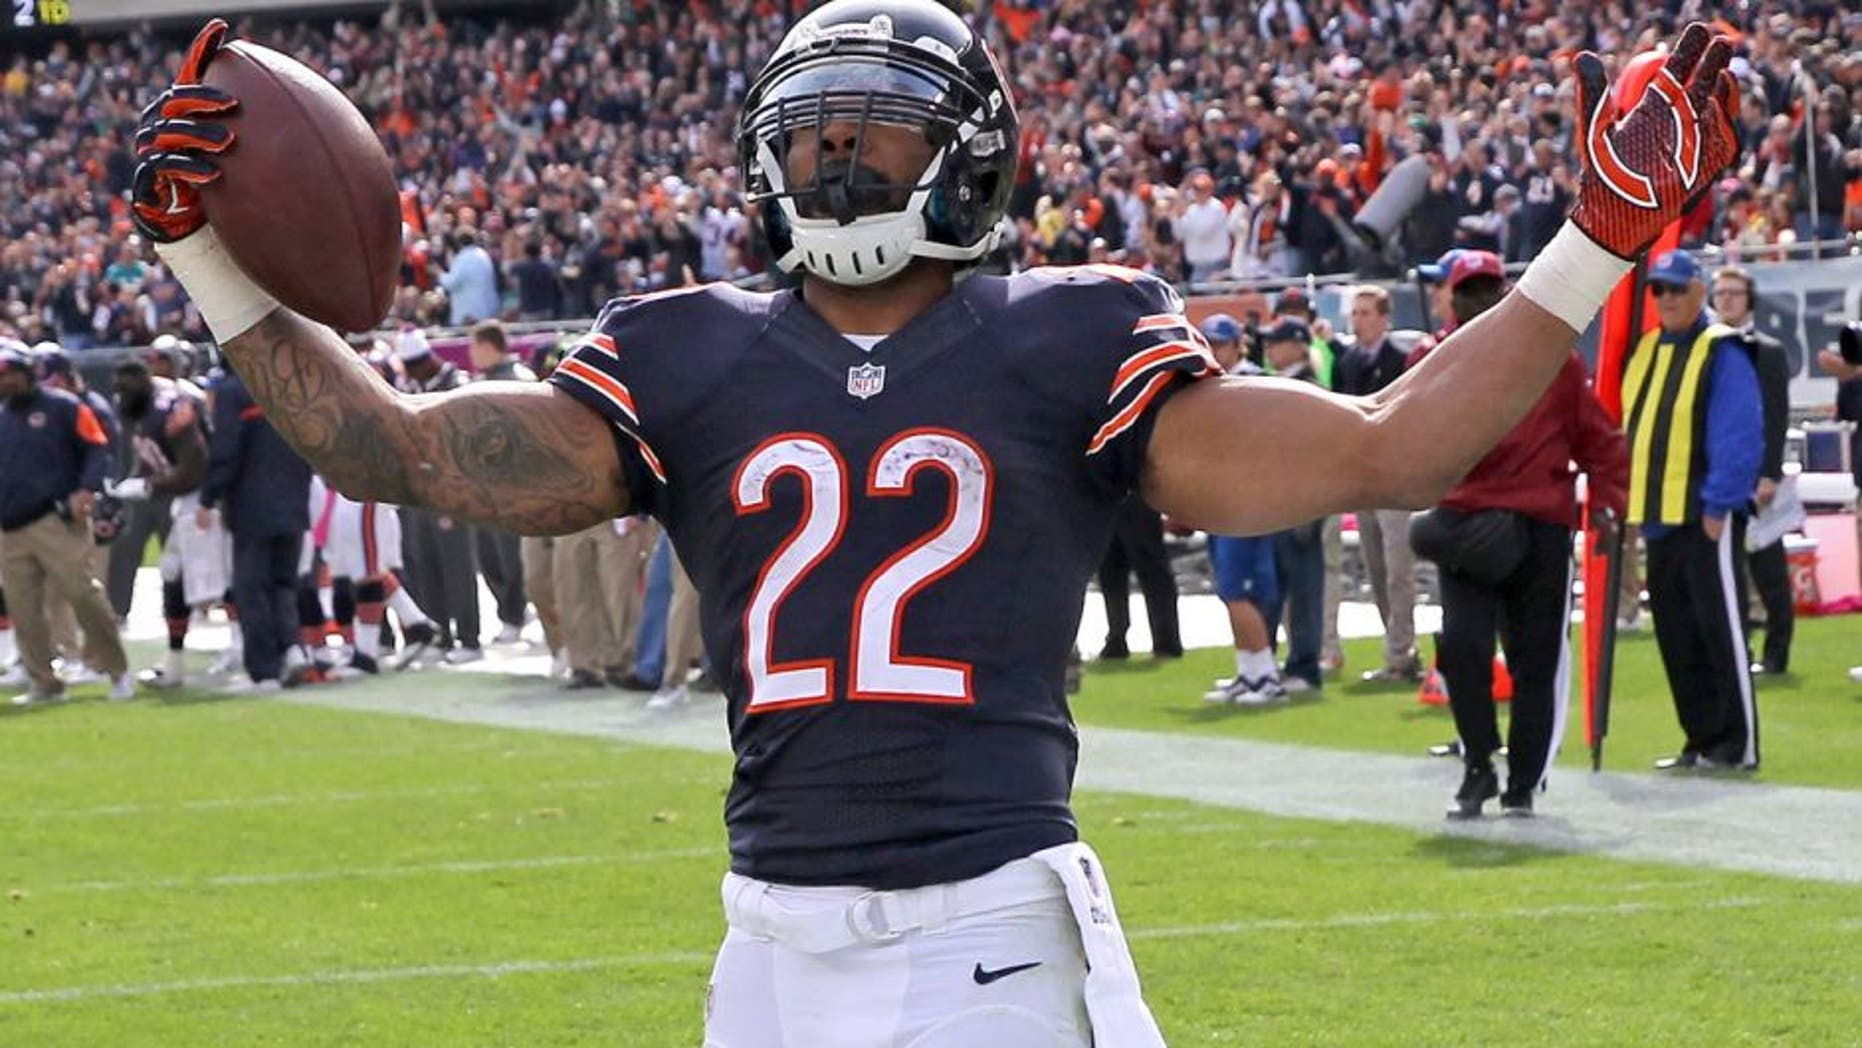 CHICAGO, IL - OCTOBER 19: Matt Forte #22 of the Chicago Bears celebrates his touchdown during the third quarter of a game against the Miami Dolphins at Soldier Field on October 19, 2014 in Chicago, Illinois. (Photo by Jonathan Daniel/Getty Images)